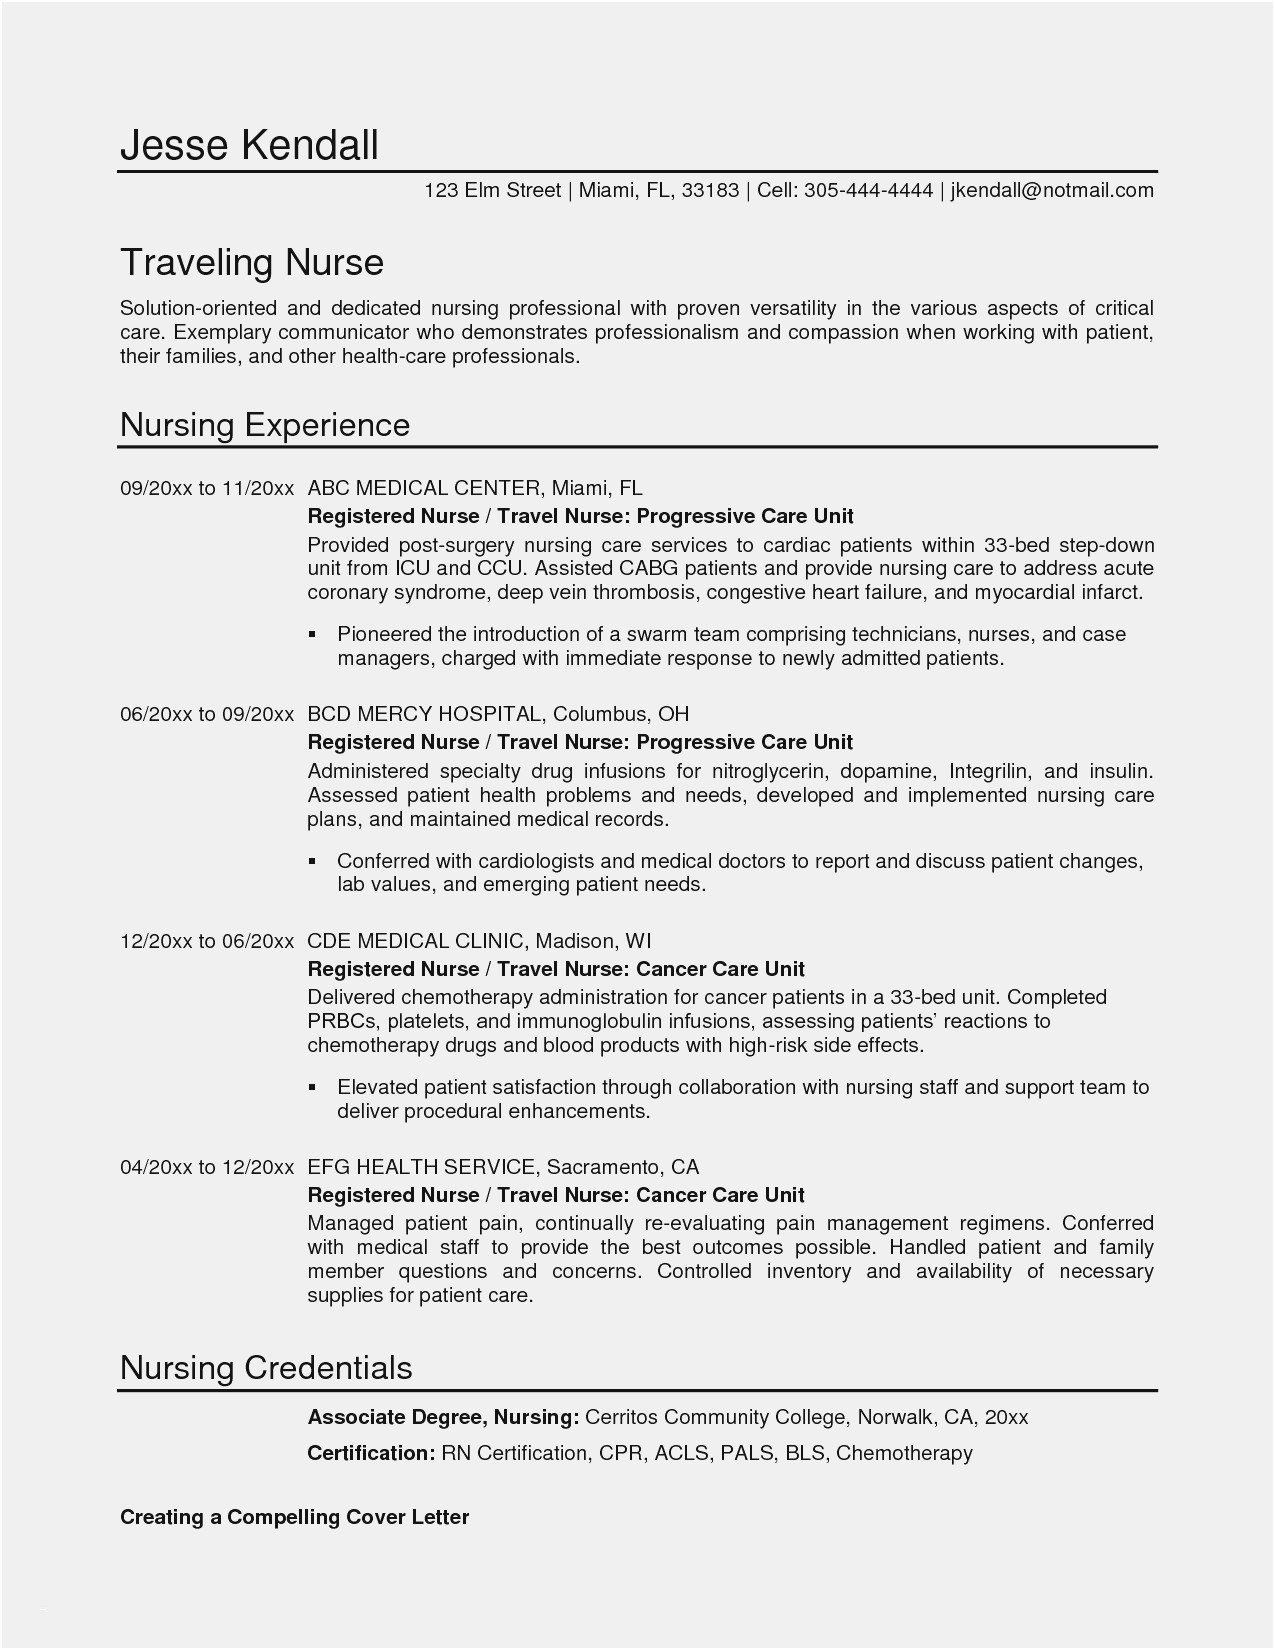 Free Stylish Resume Templates - Sample Resume Guide Edmyedguide24